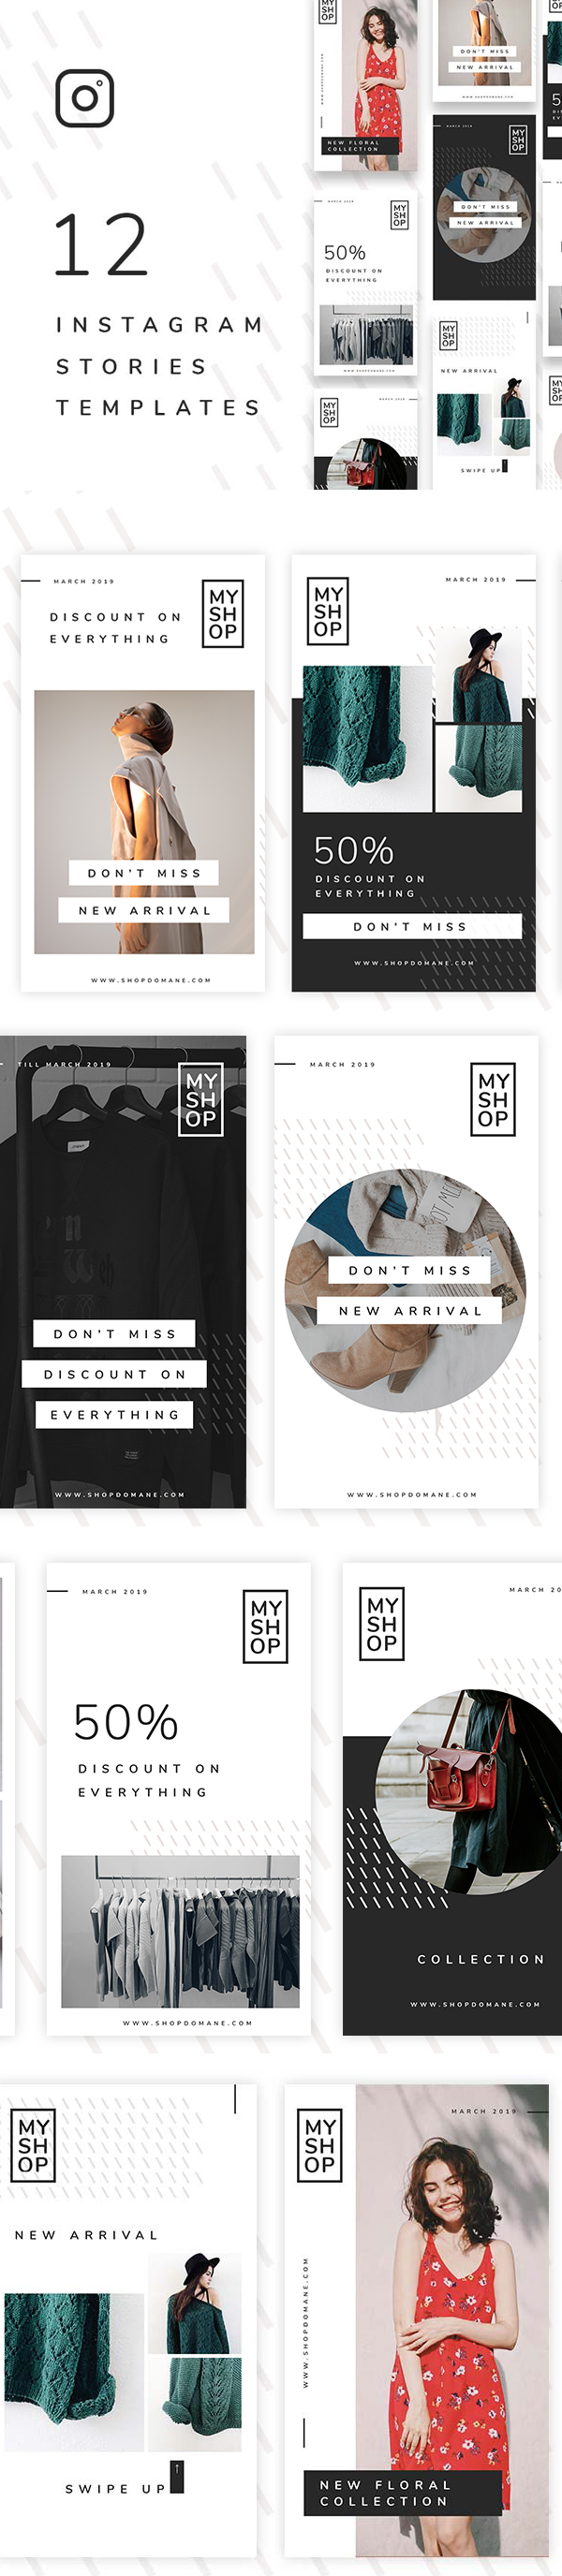 Free Instagram Stories Template PSD Files